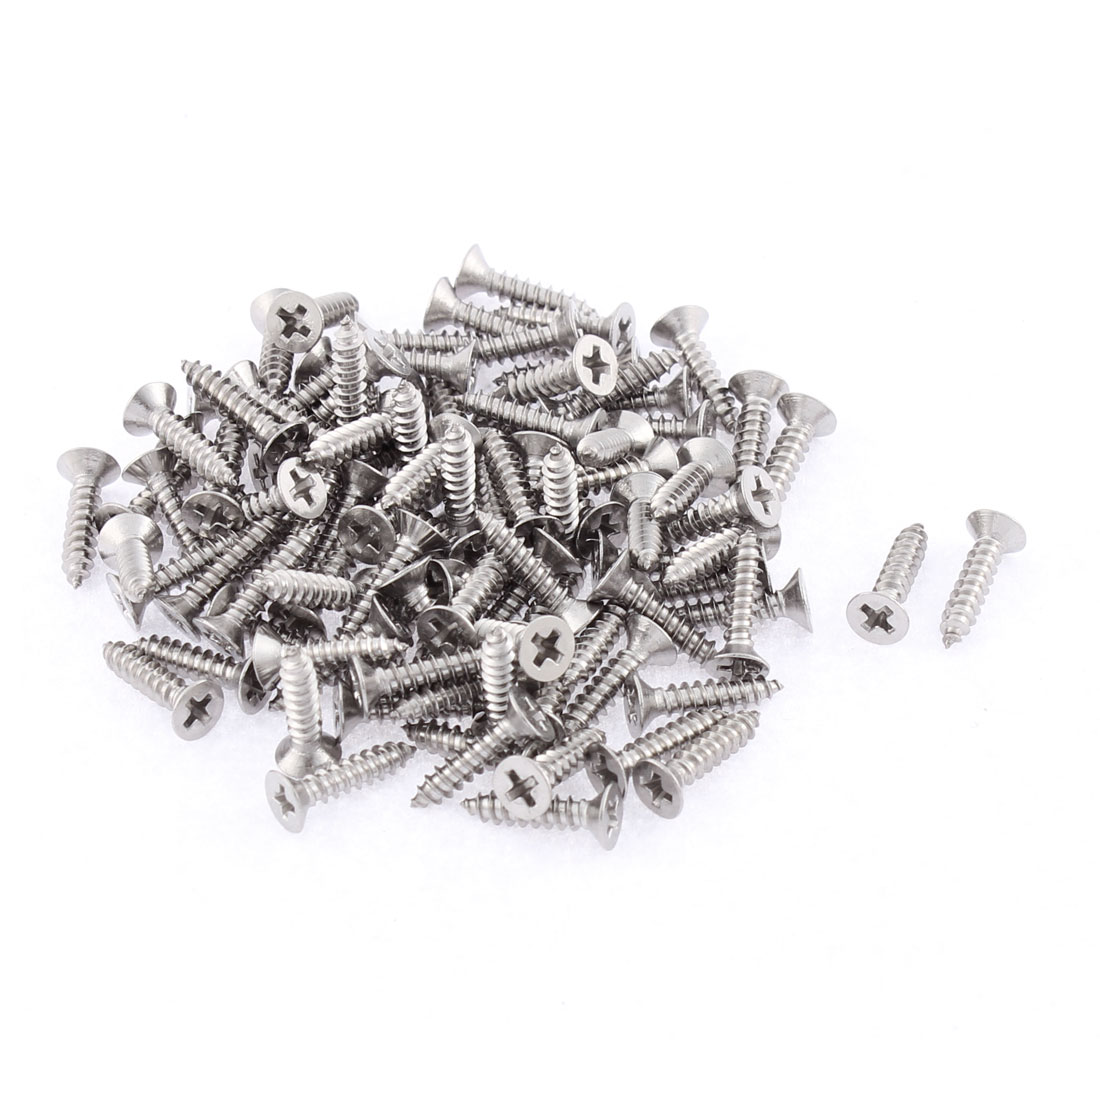 100 Pcs 2.9mmx13mm Stainless Steel Phillips Flat Head Sheet Self Tapping Screws